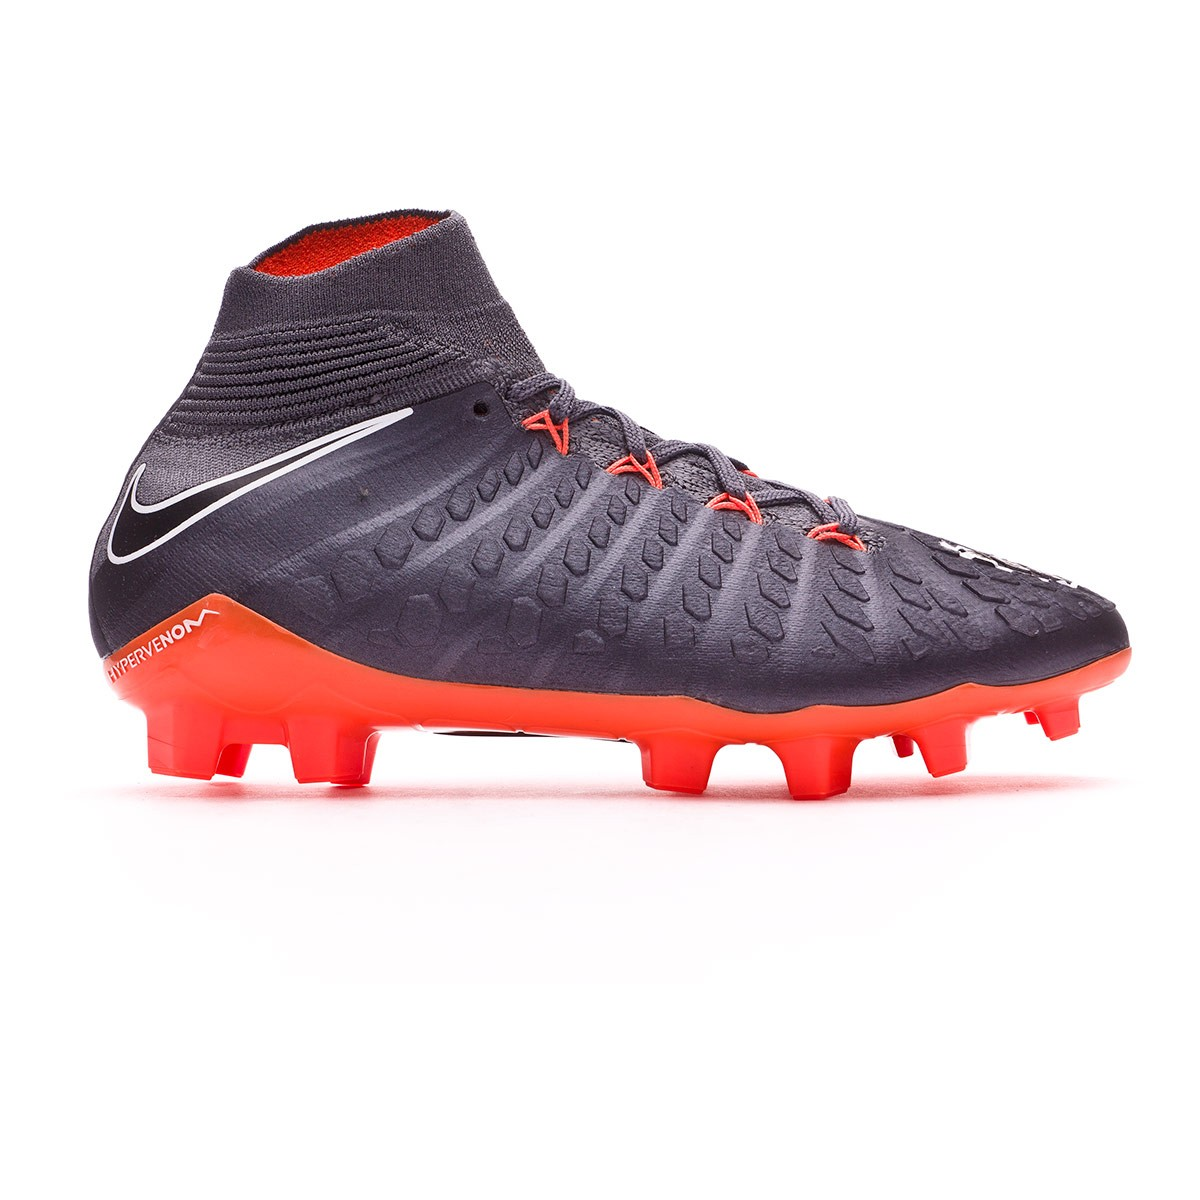 0ad1113119cf6 Chaussure de foot Nike Hypervenom Phantom III Elite DF FG Enfant Dark  grey-Total orange-White - Boutique de football Fútbol Emotion